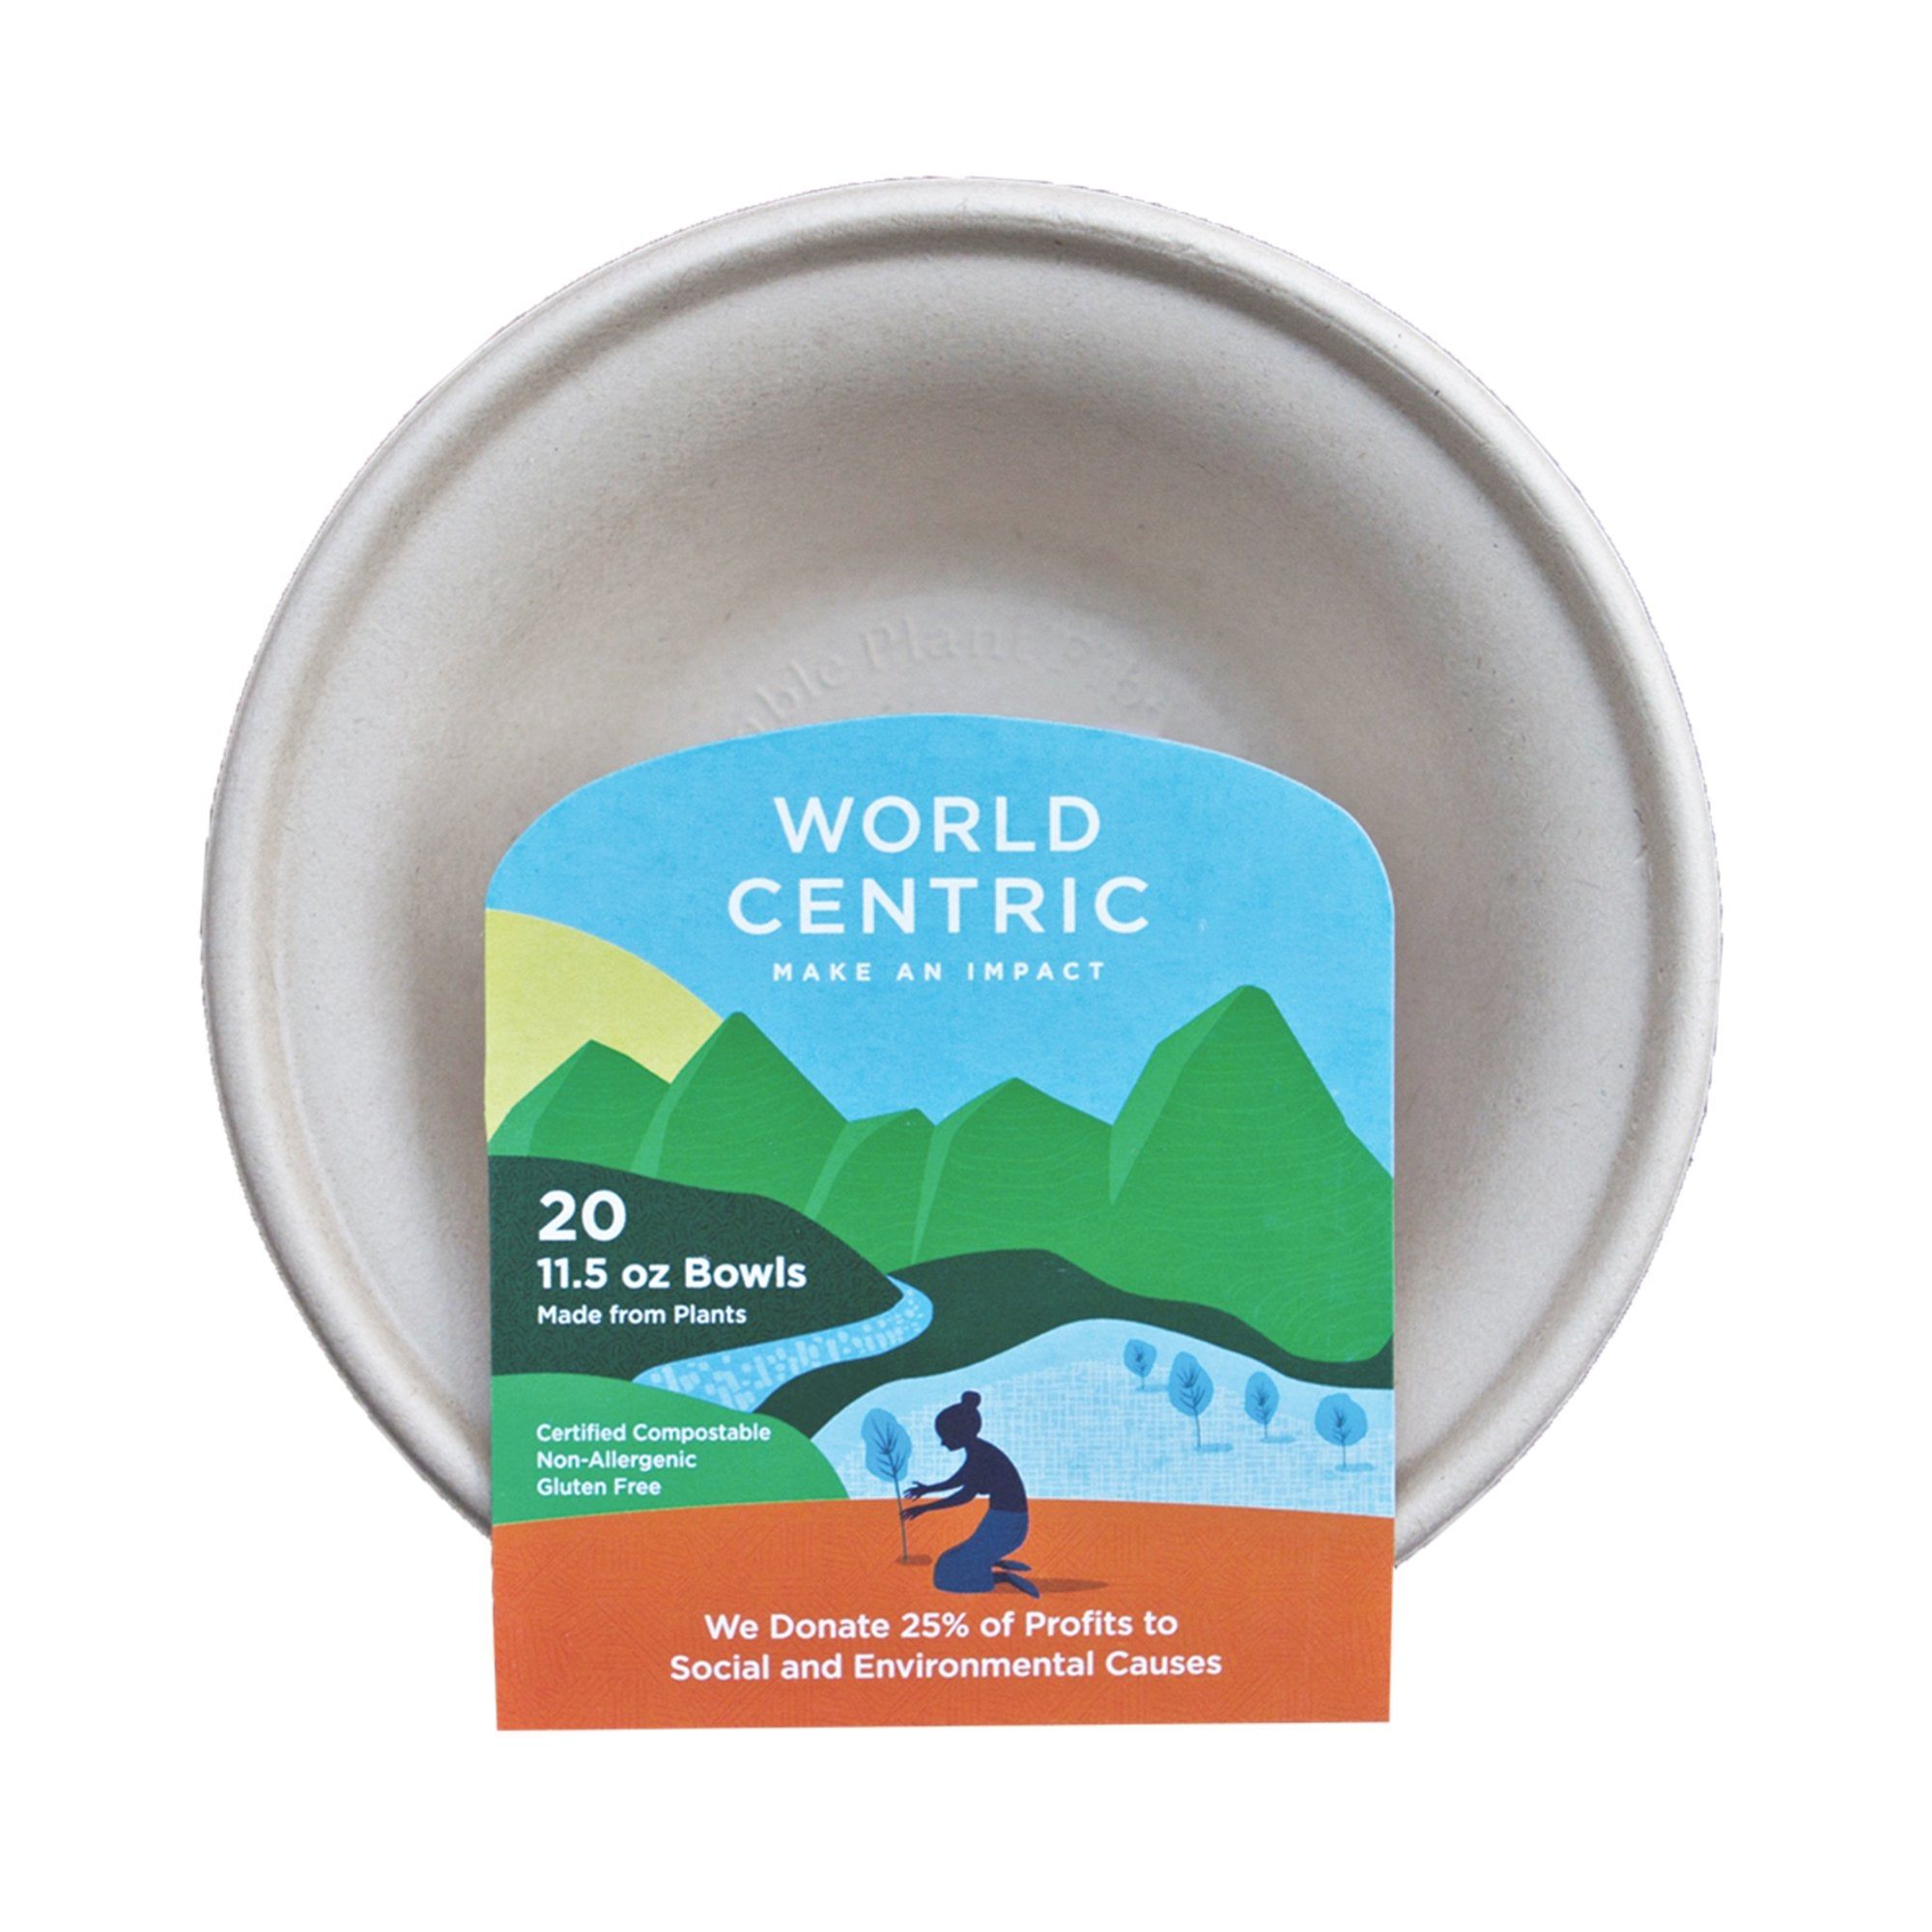 Compostable 11.5 oz Bowls